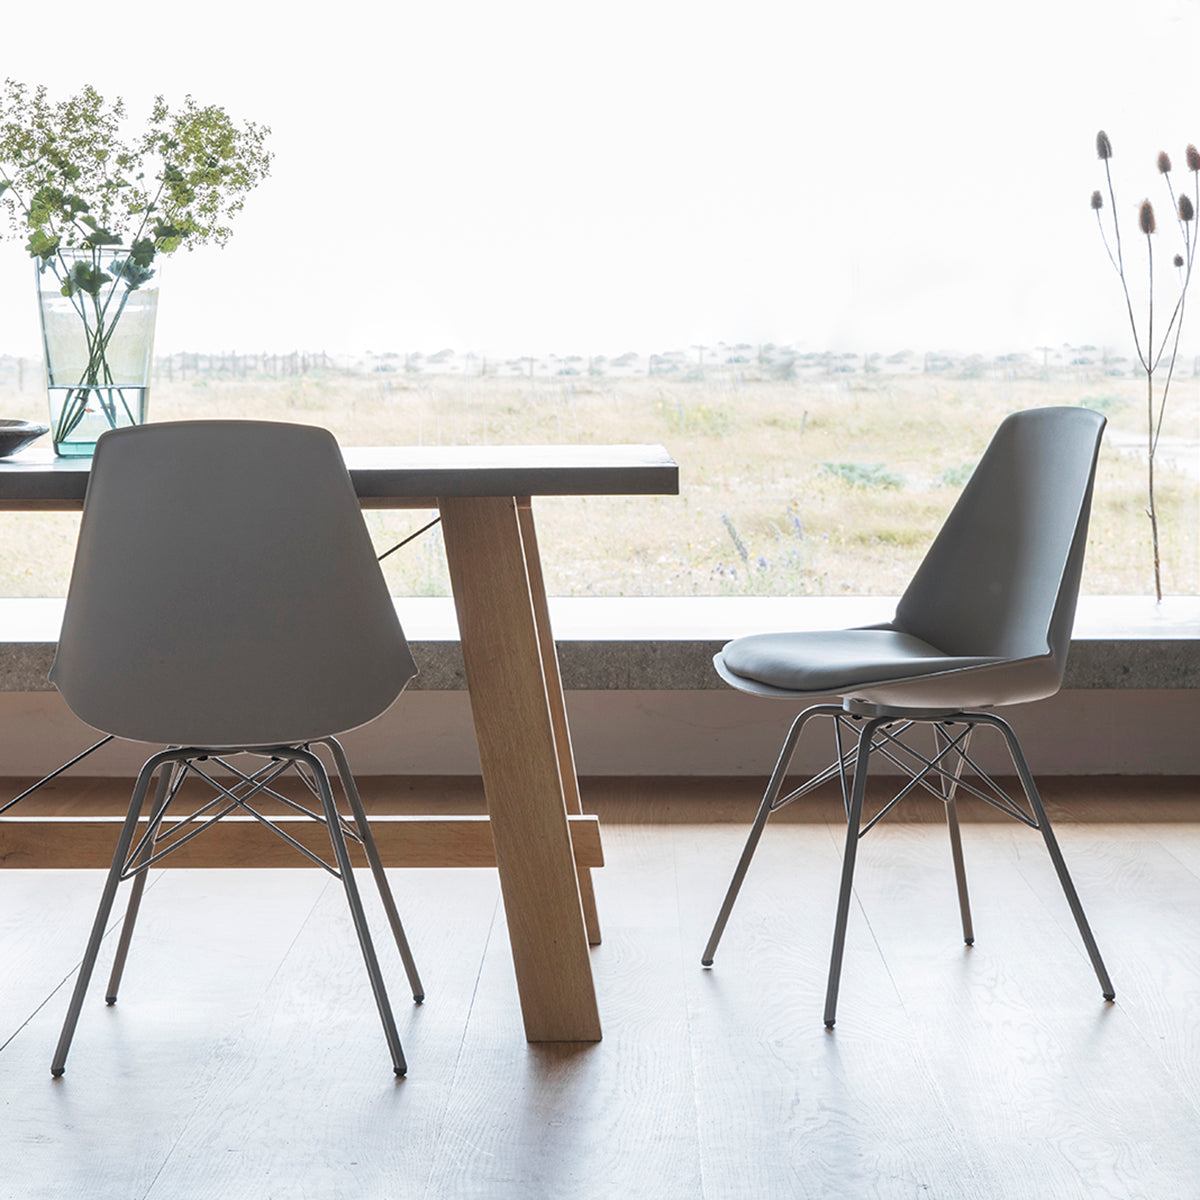 Barnet Chairs in Grey - Ezzo